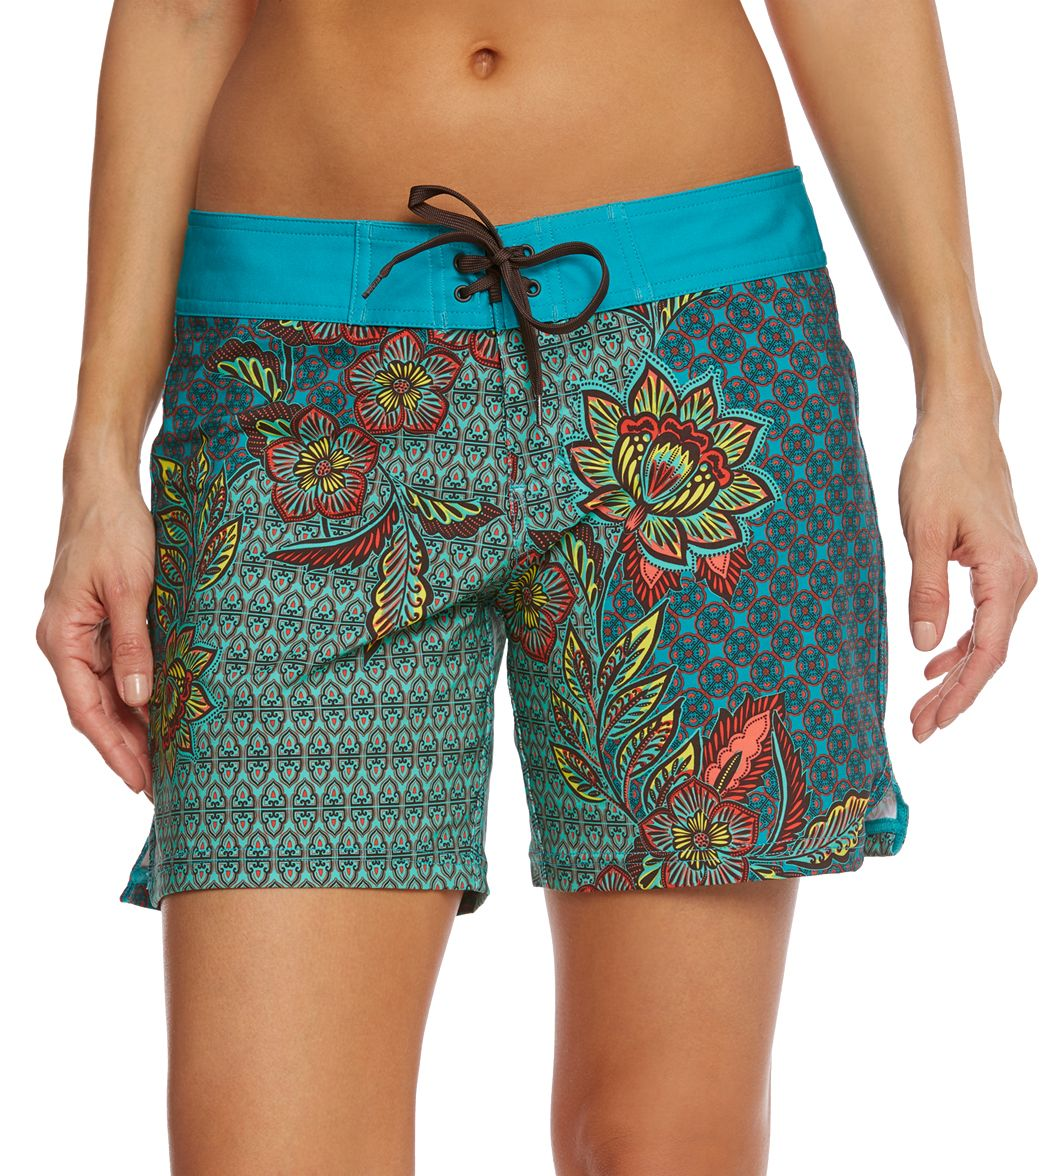 ba8cb6a9c2 ... prAna Women's Fleur D'Amour Makenna Boardshort. Play Video. MODEL  MEASUREMENTS